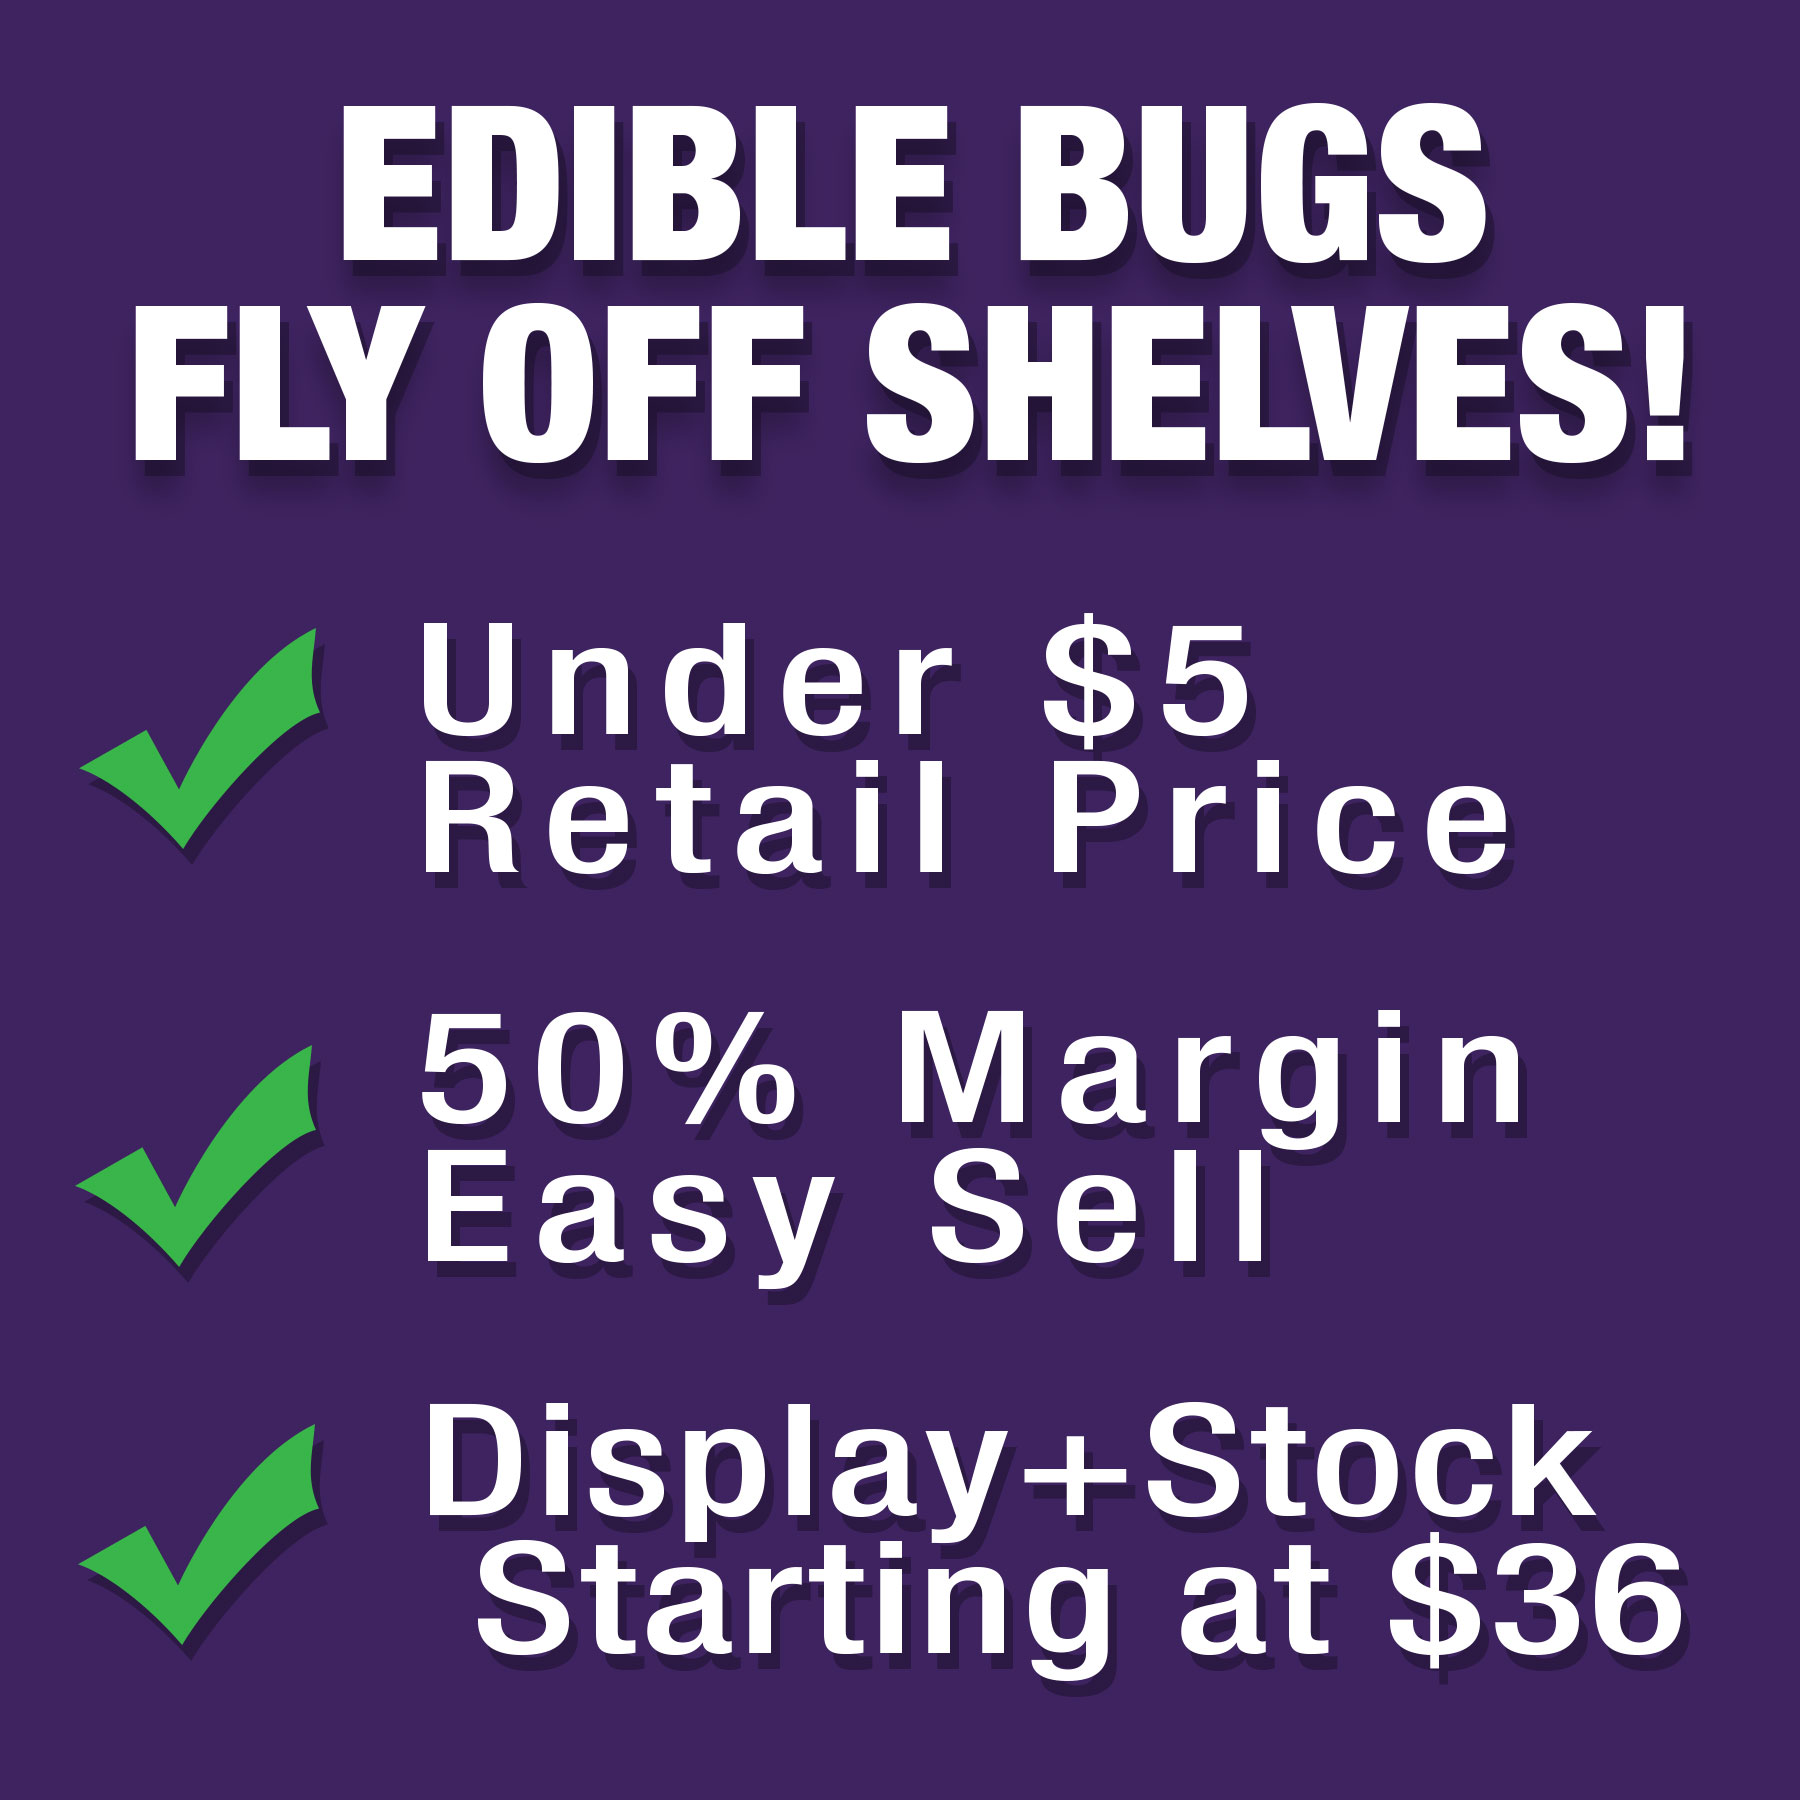 Edible Bugs For Sale